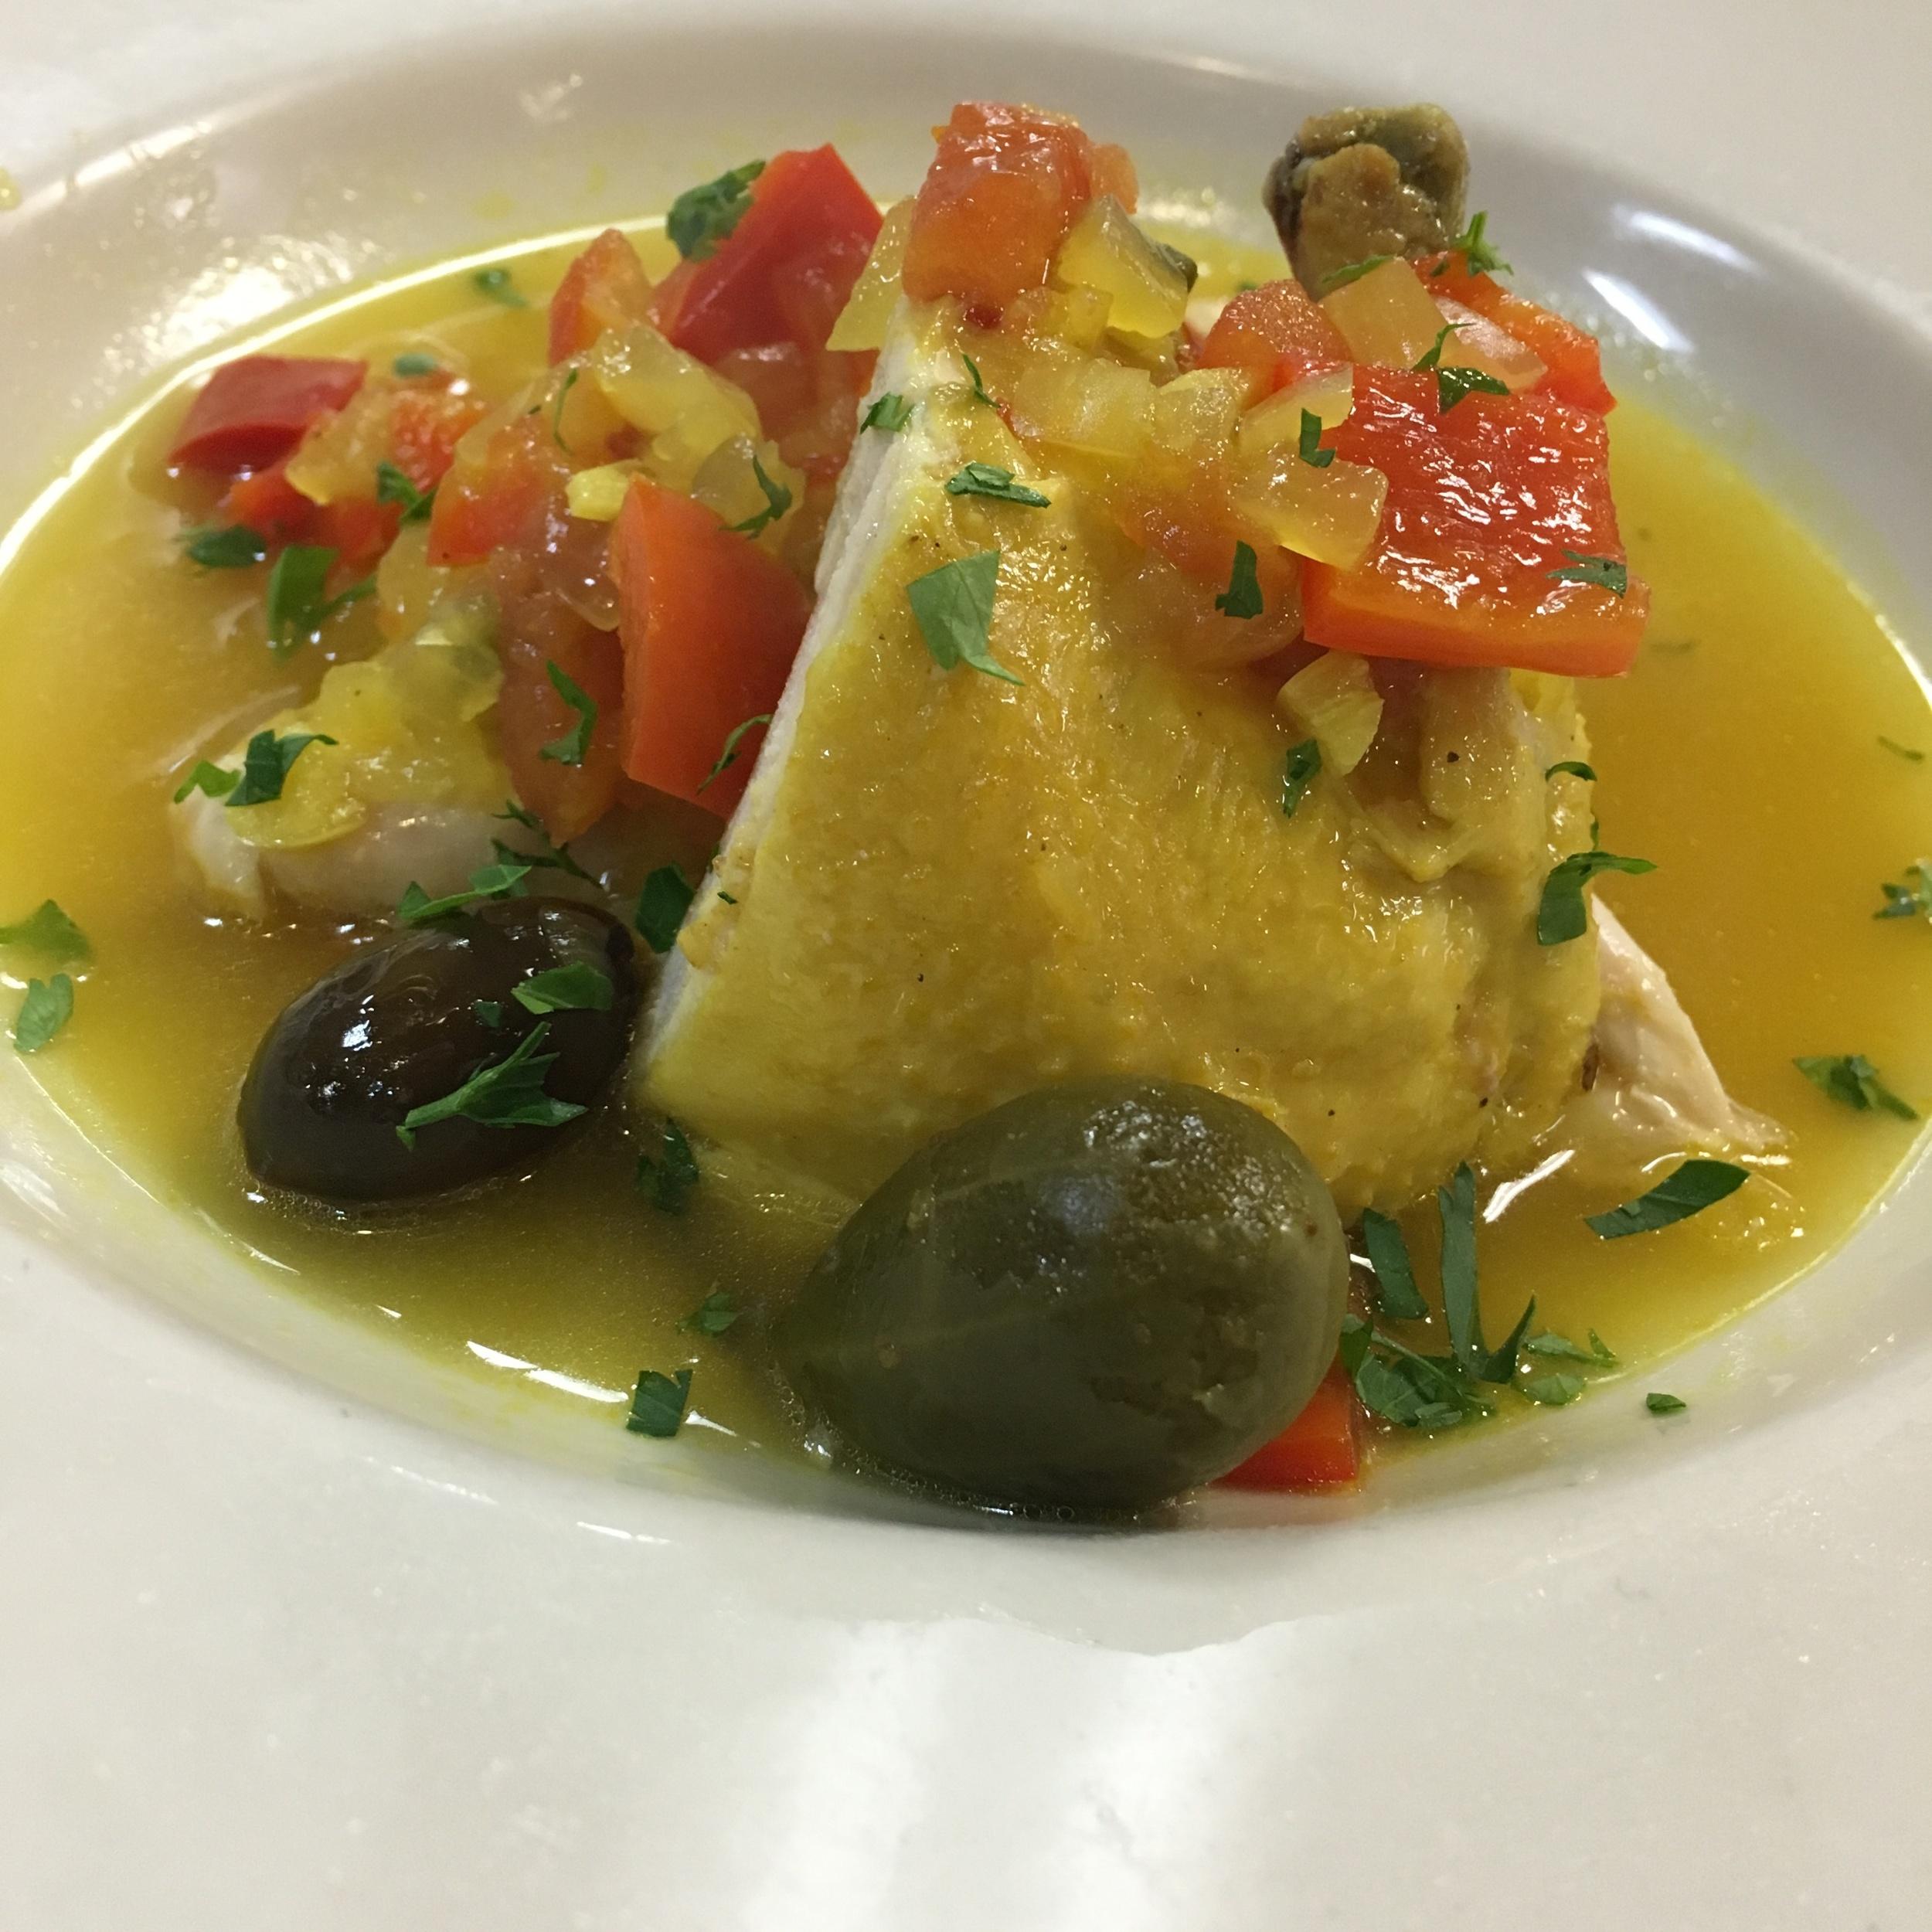 THIS DISH HAD CAPERS, GARLIC, OLIVES, BELL PEPPER, CAPER BERRIES AND TOMATOES....ALL CLASSIC ITALIAN FLAVORS.